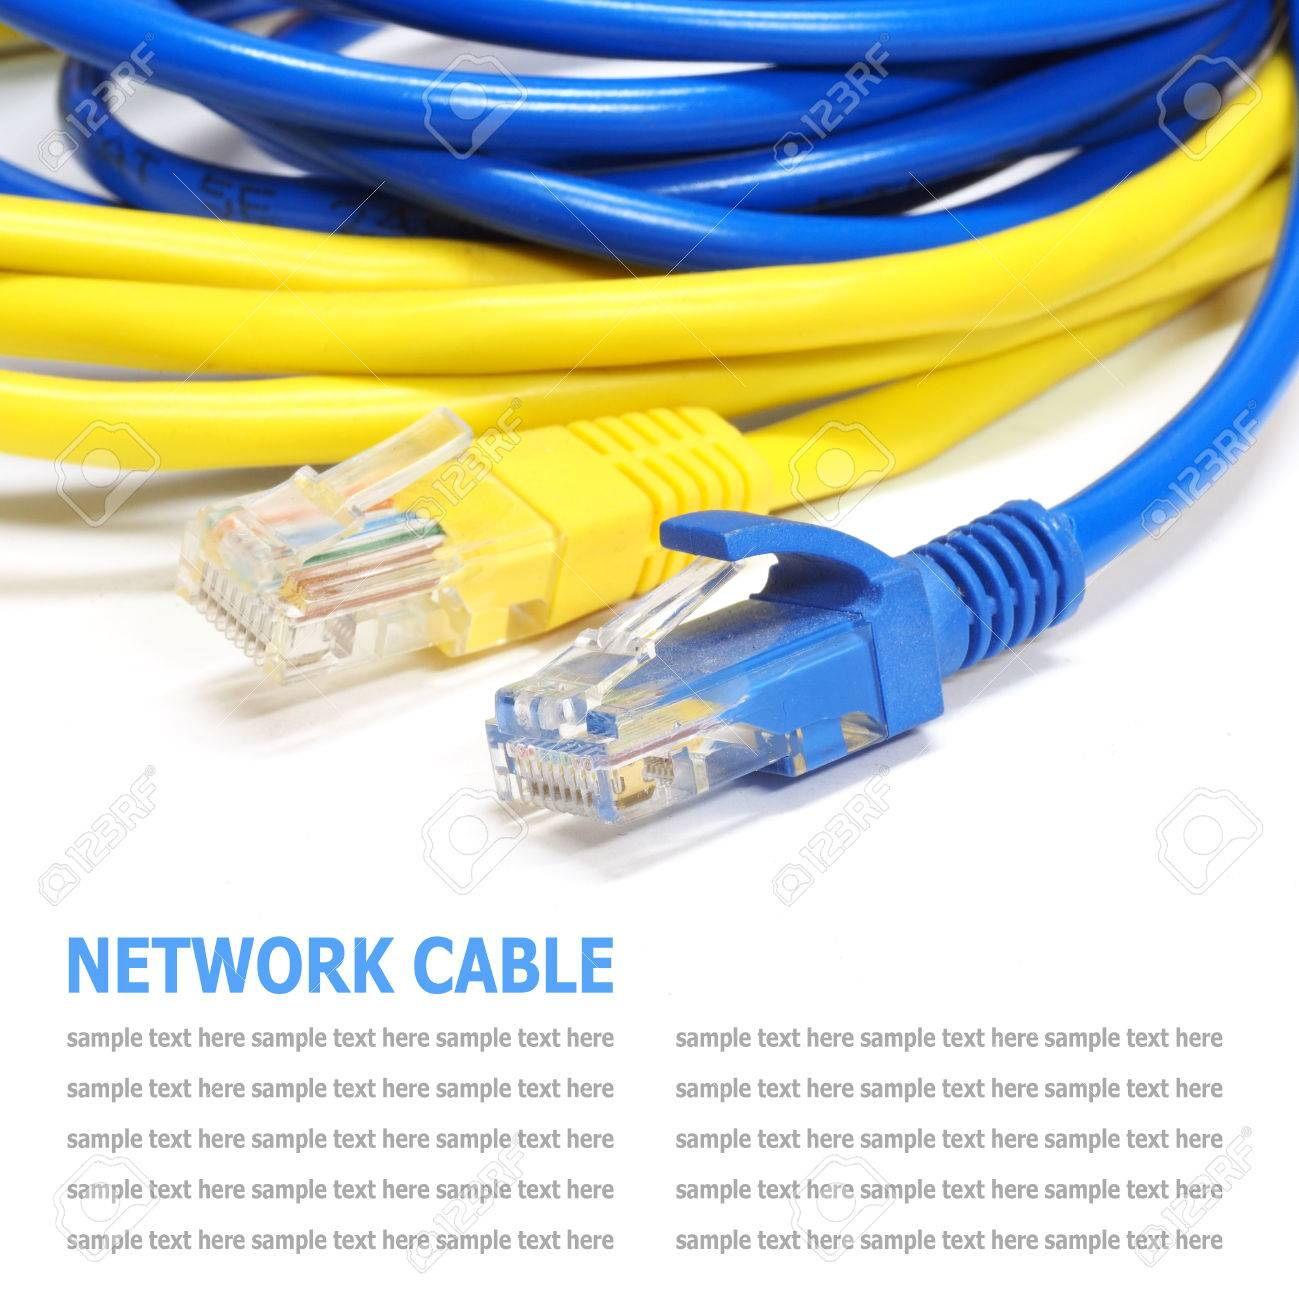 Network internet cable isolated on white background Standard-Bild - 37105569